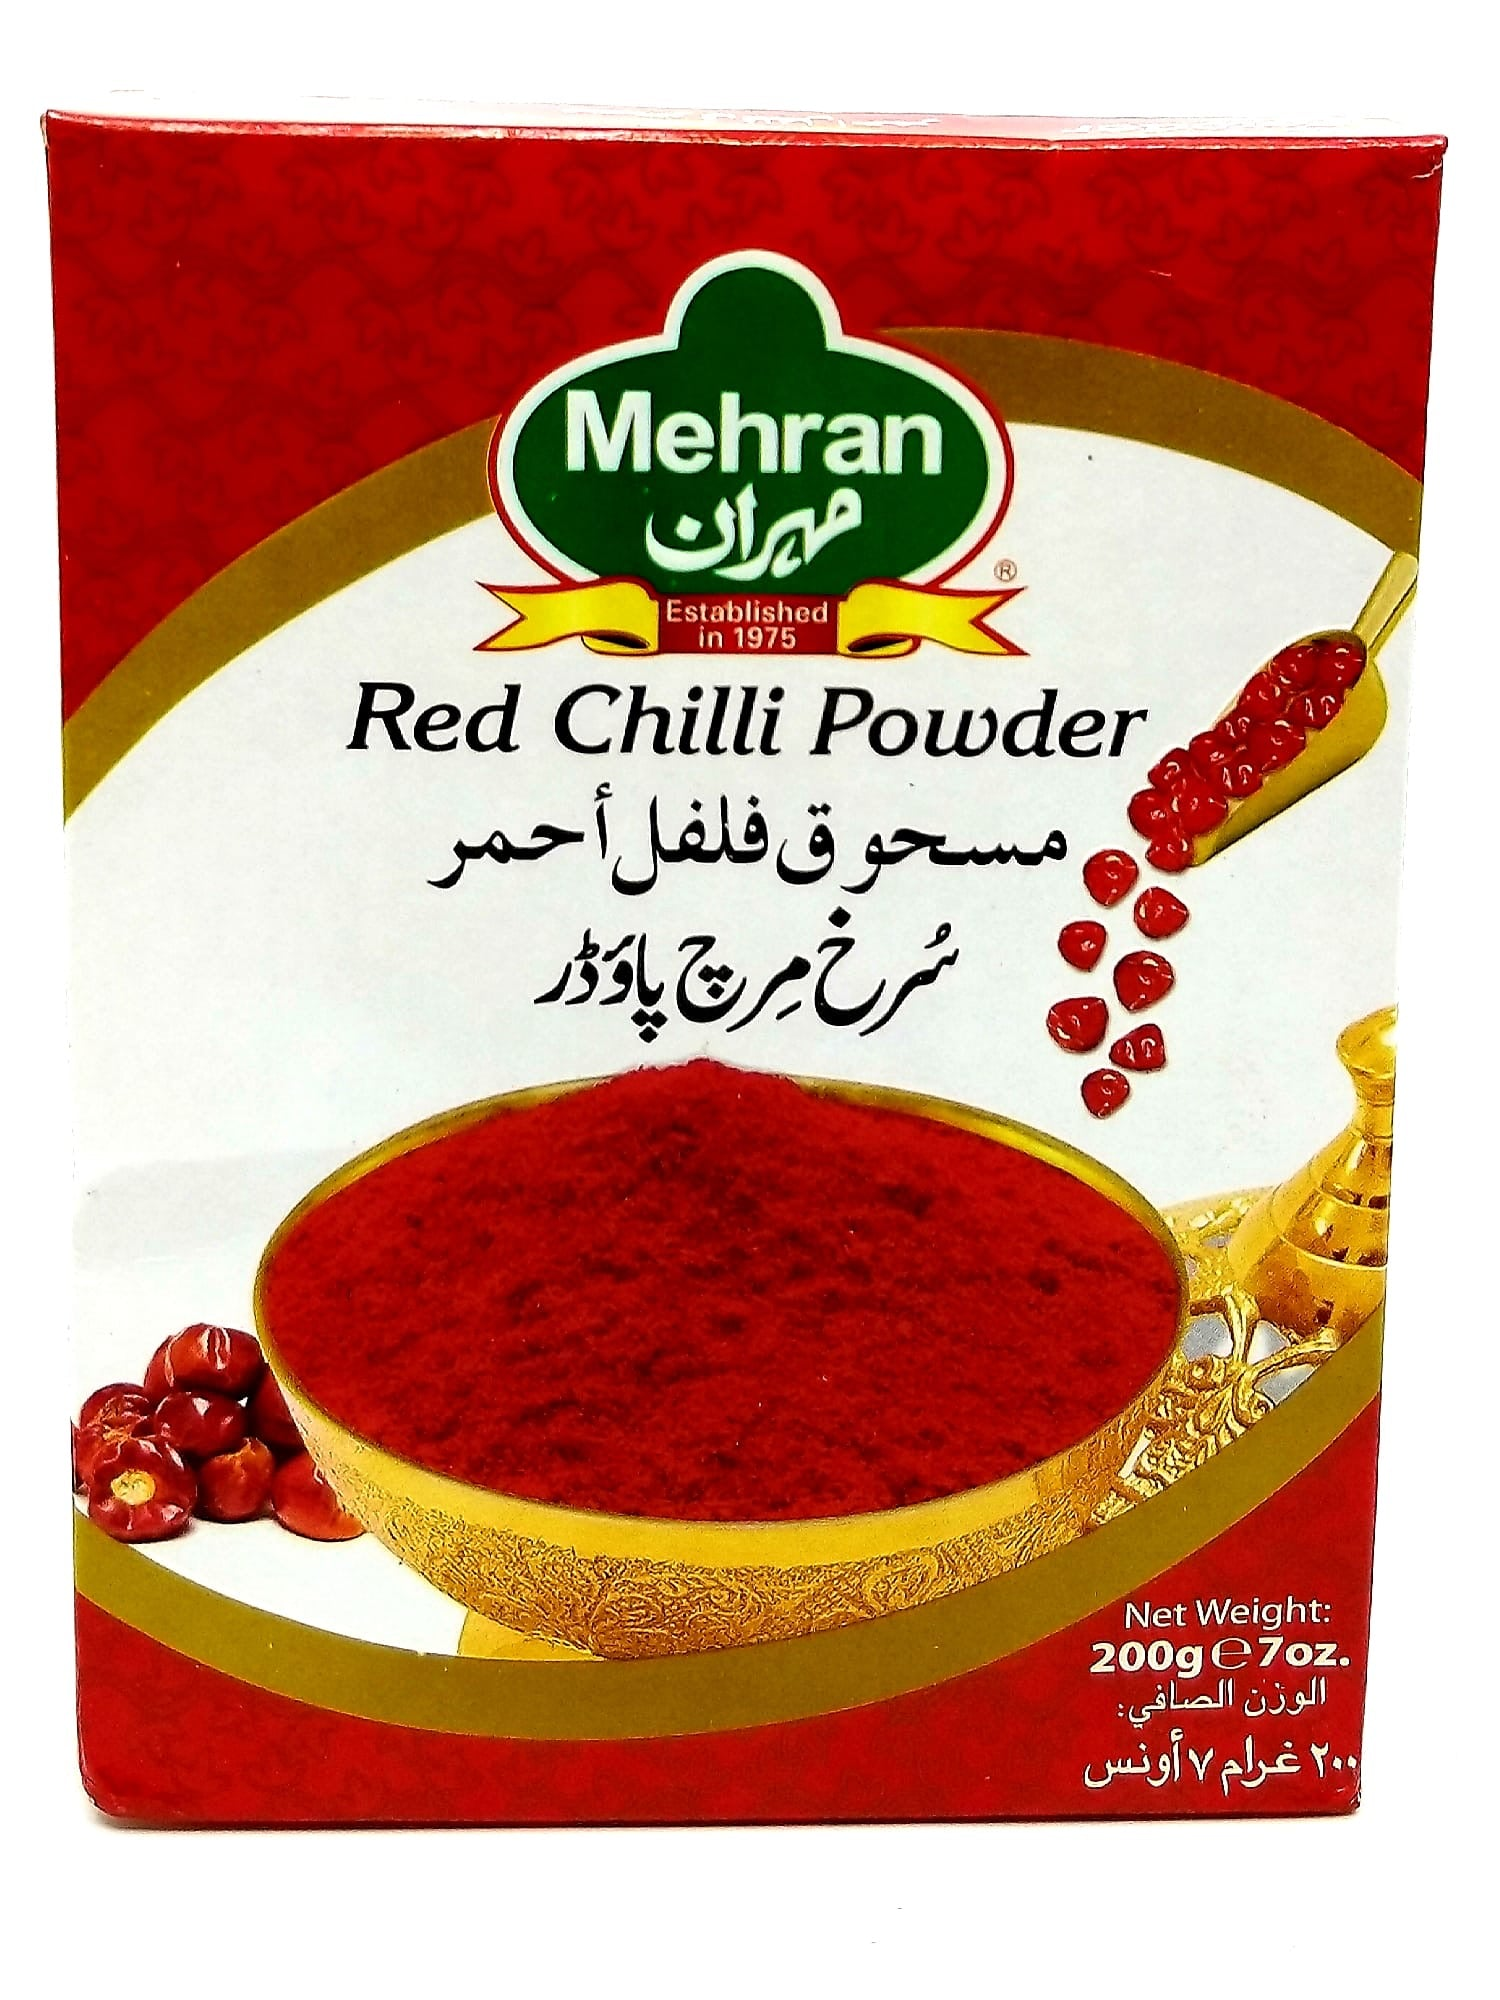 Mehran Red chilli powder